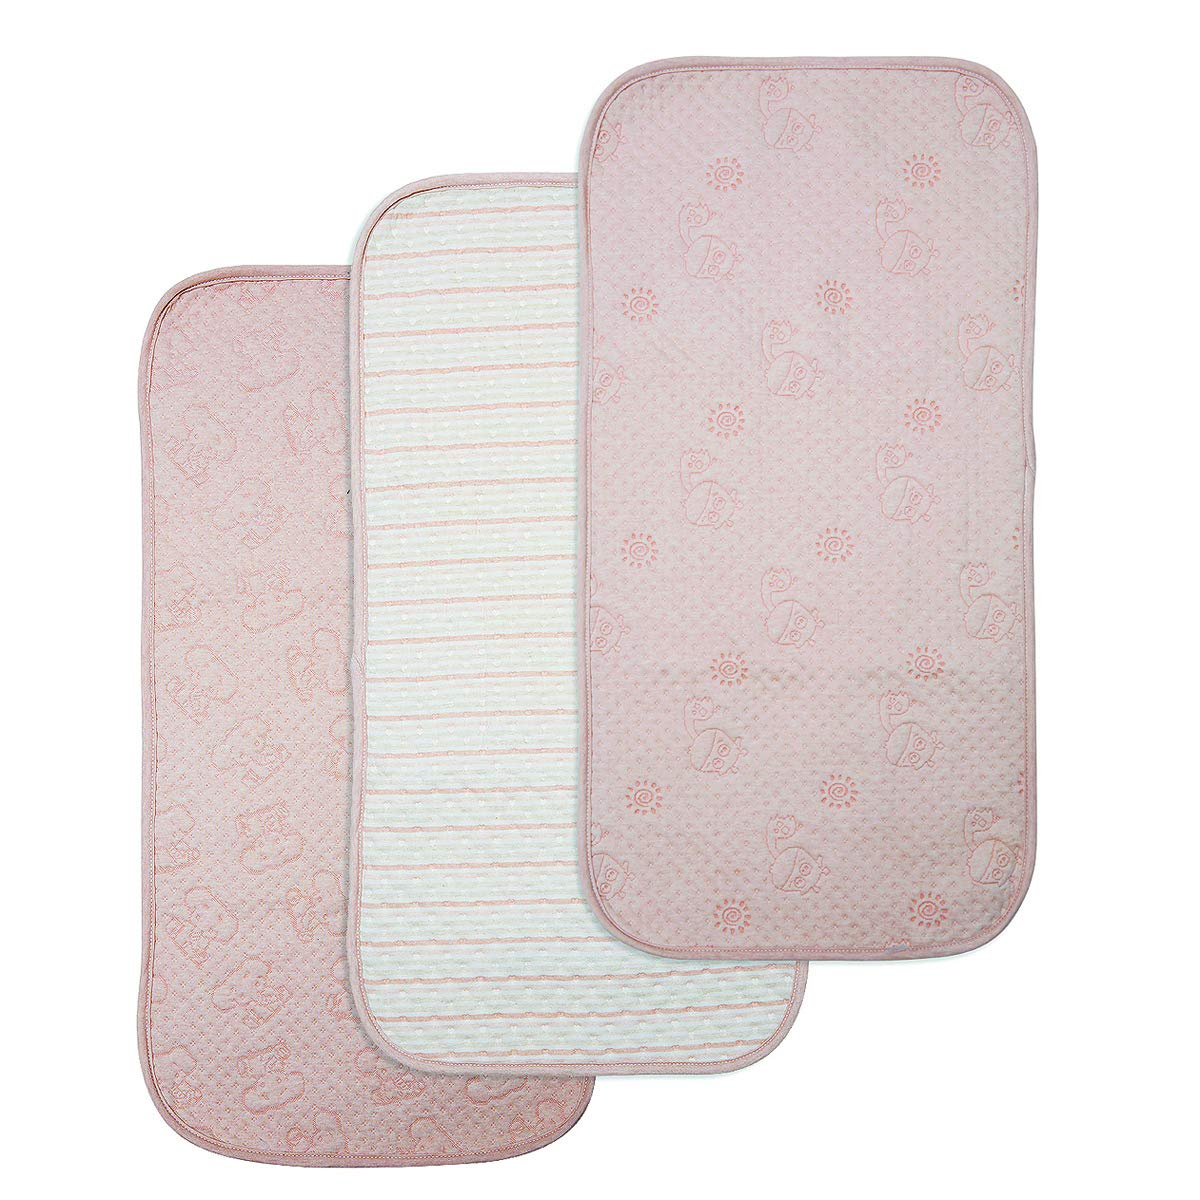 BlueSnail Organic Cotton Waterproof Changing Pad Liners 3PK, Super Absorbent and Ultra Soft.